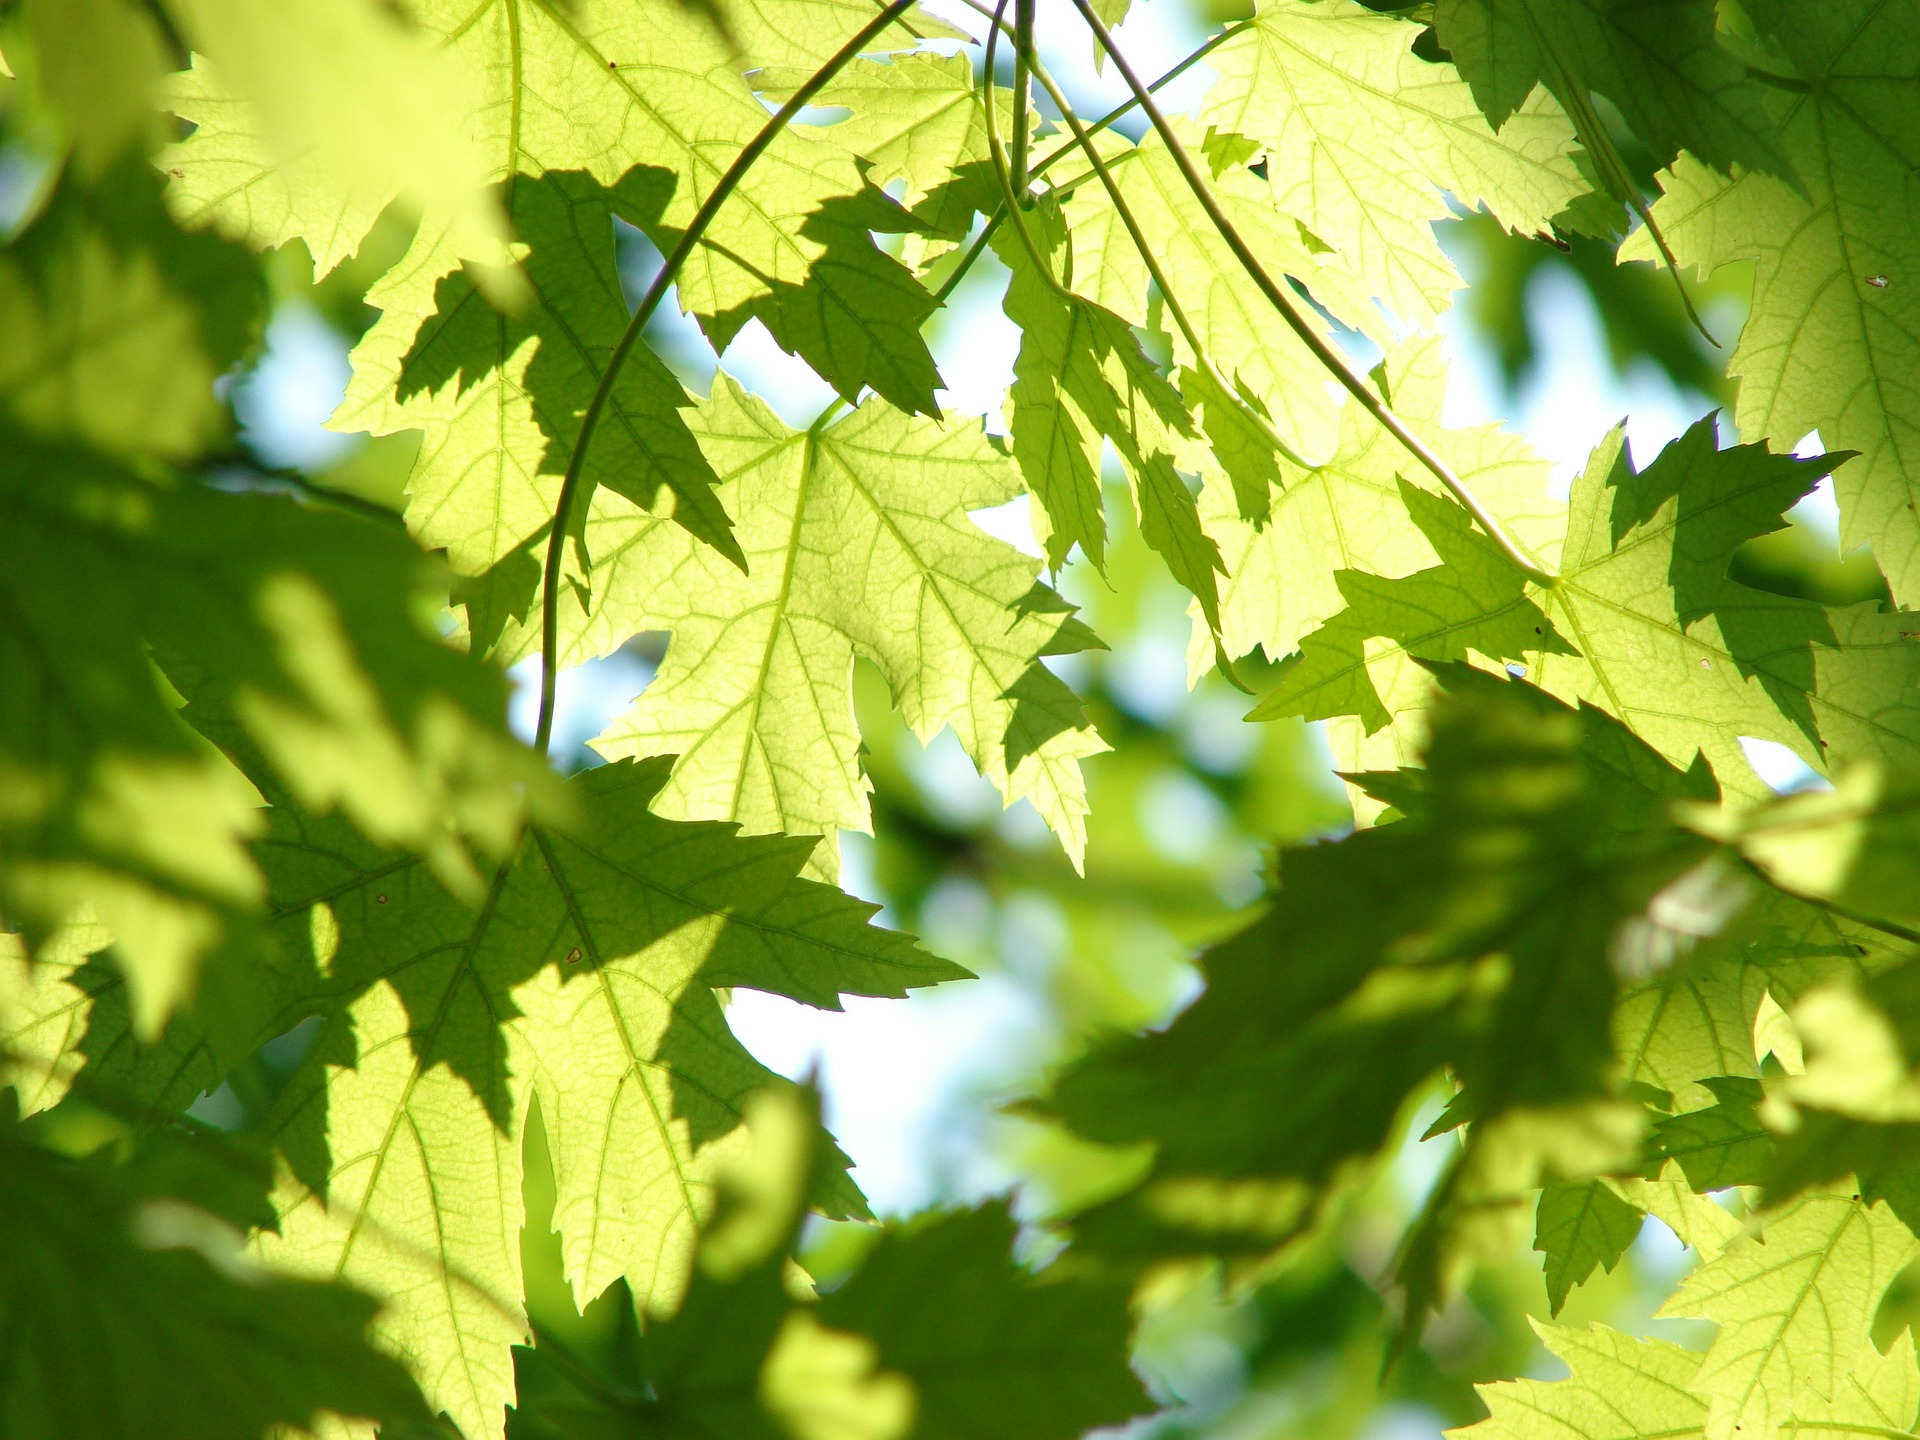 Sunlight filtering through the leaves of a tree